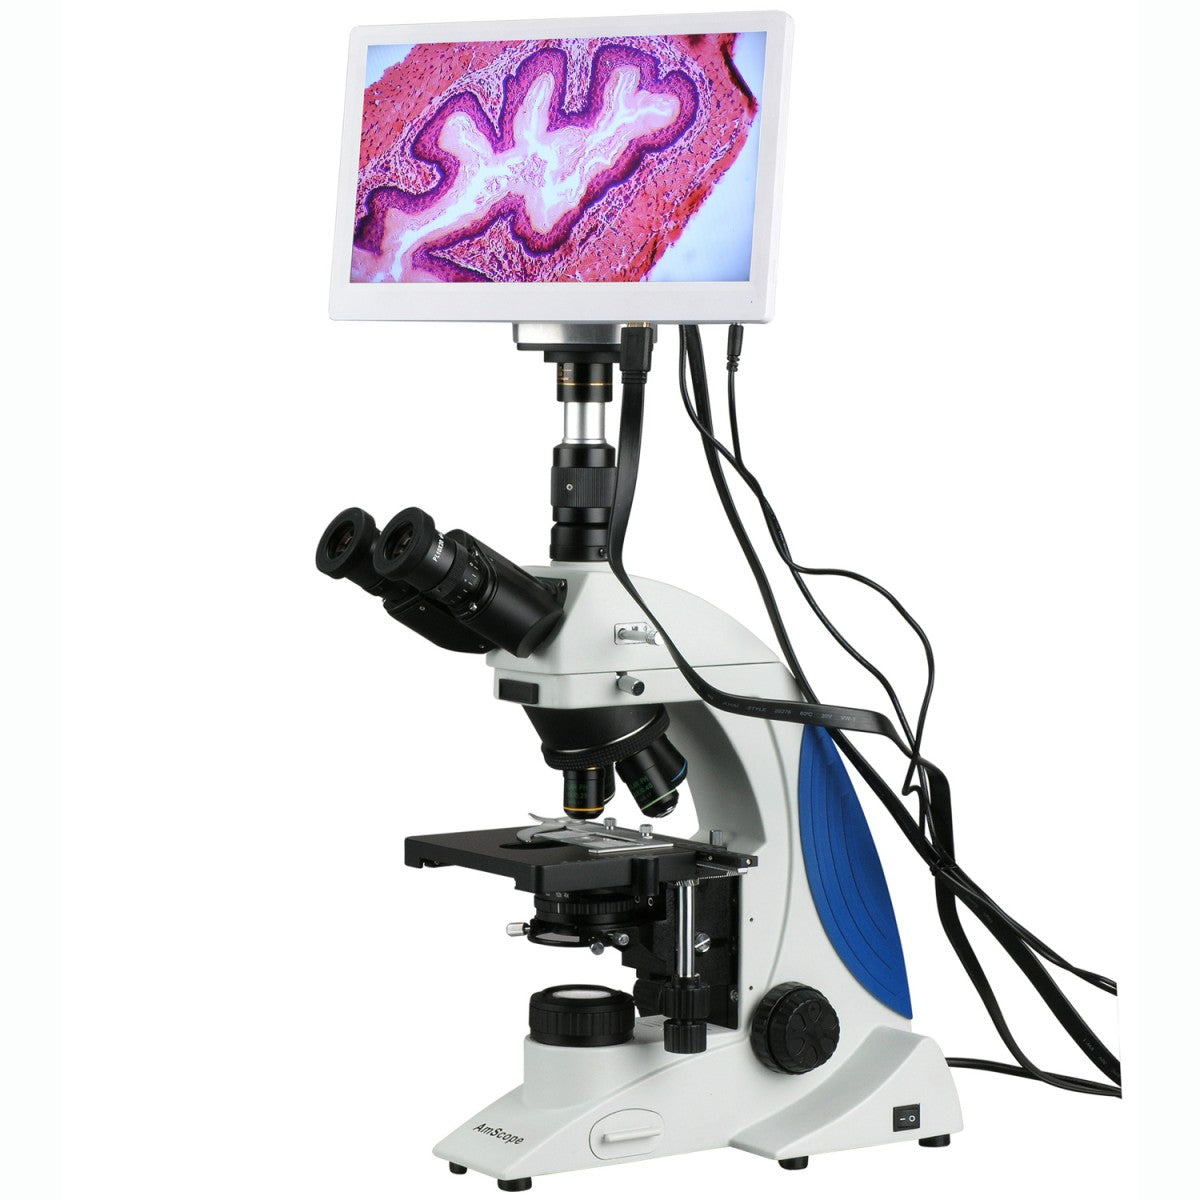 AmScope 40X-1000X Plan Infinity Kohler Laboratory Research Microscope with HDMI Camera & HD Monitor